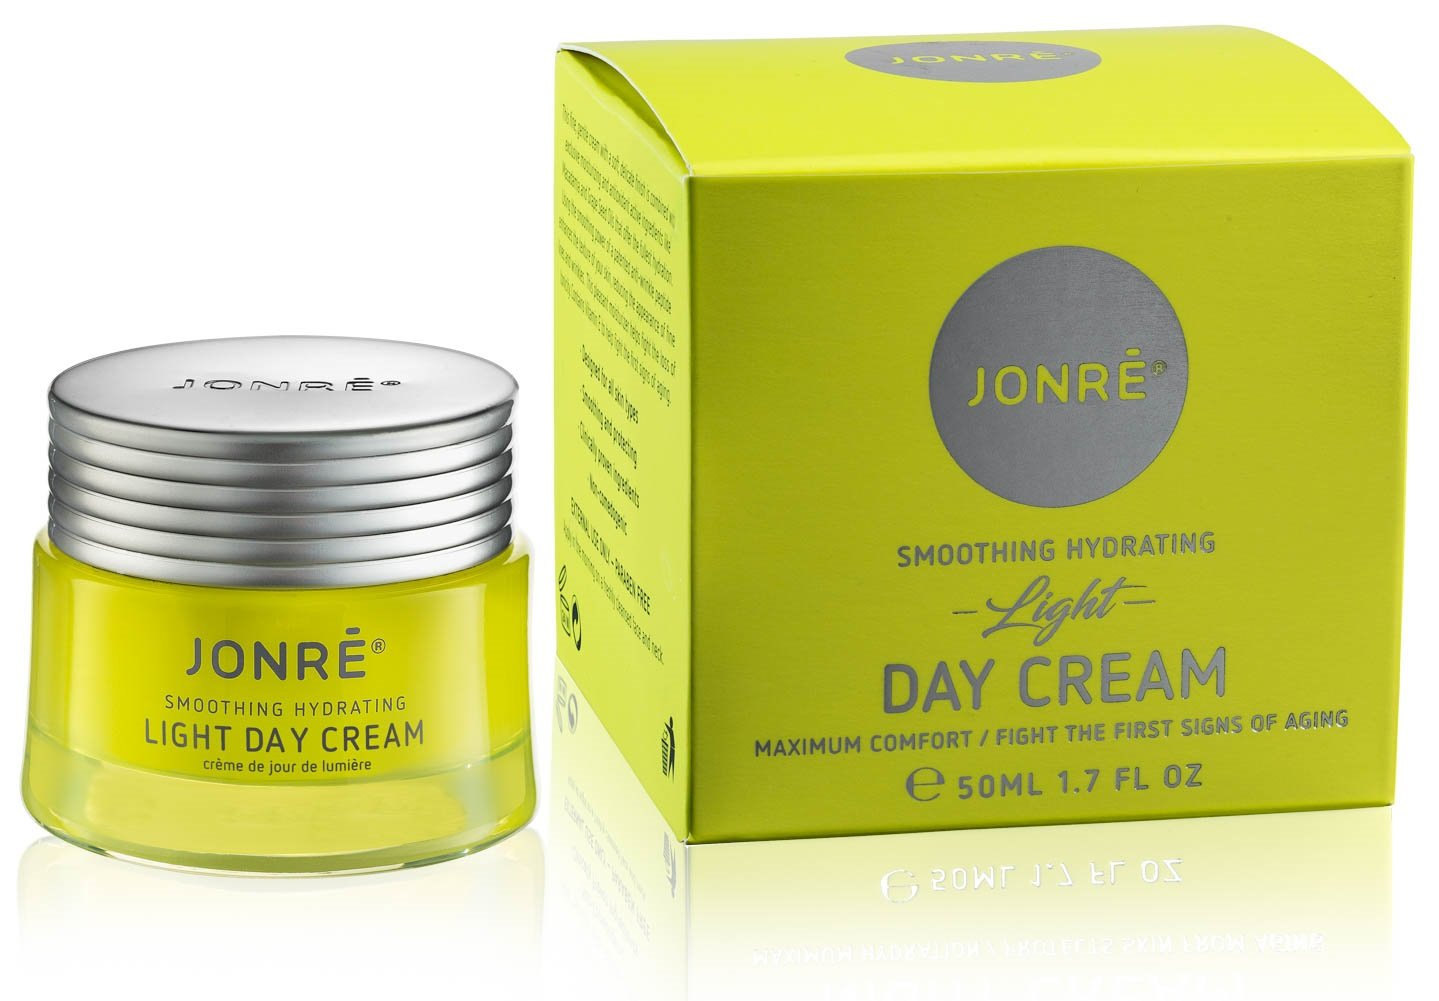 Jonre Day Face Cream, Face Moisturizer, Anti Wrinkle Cream, Smoothing, Hydrating, & Protecting Your Skin